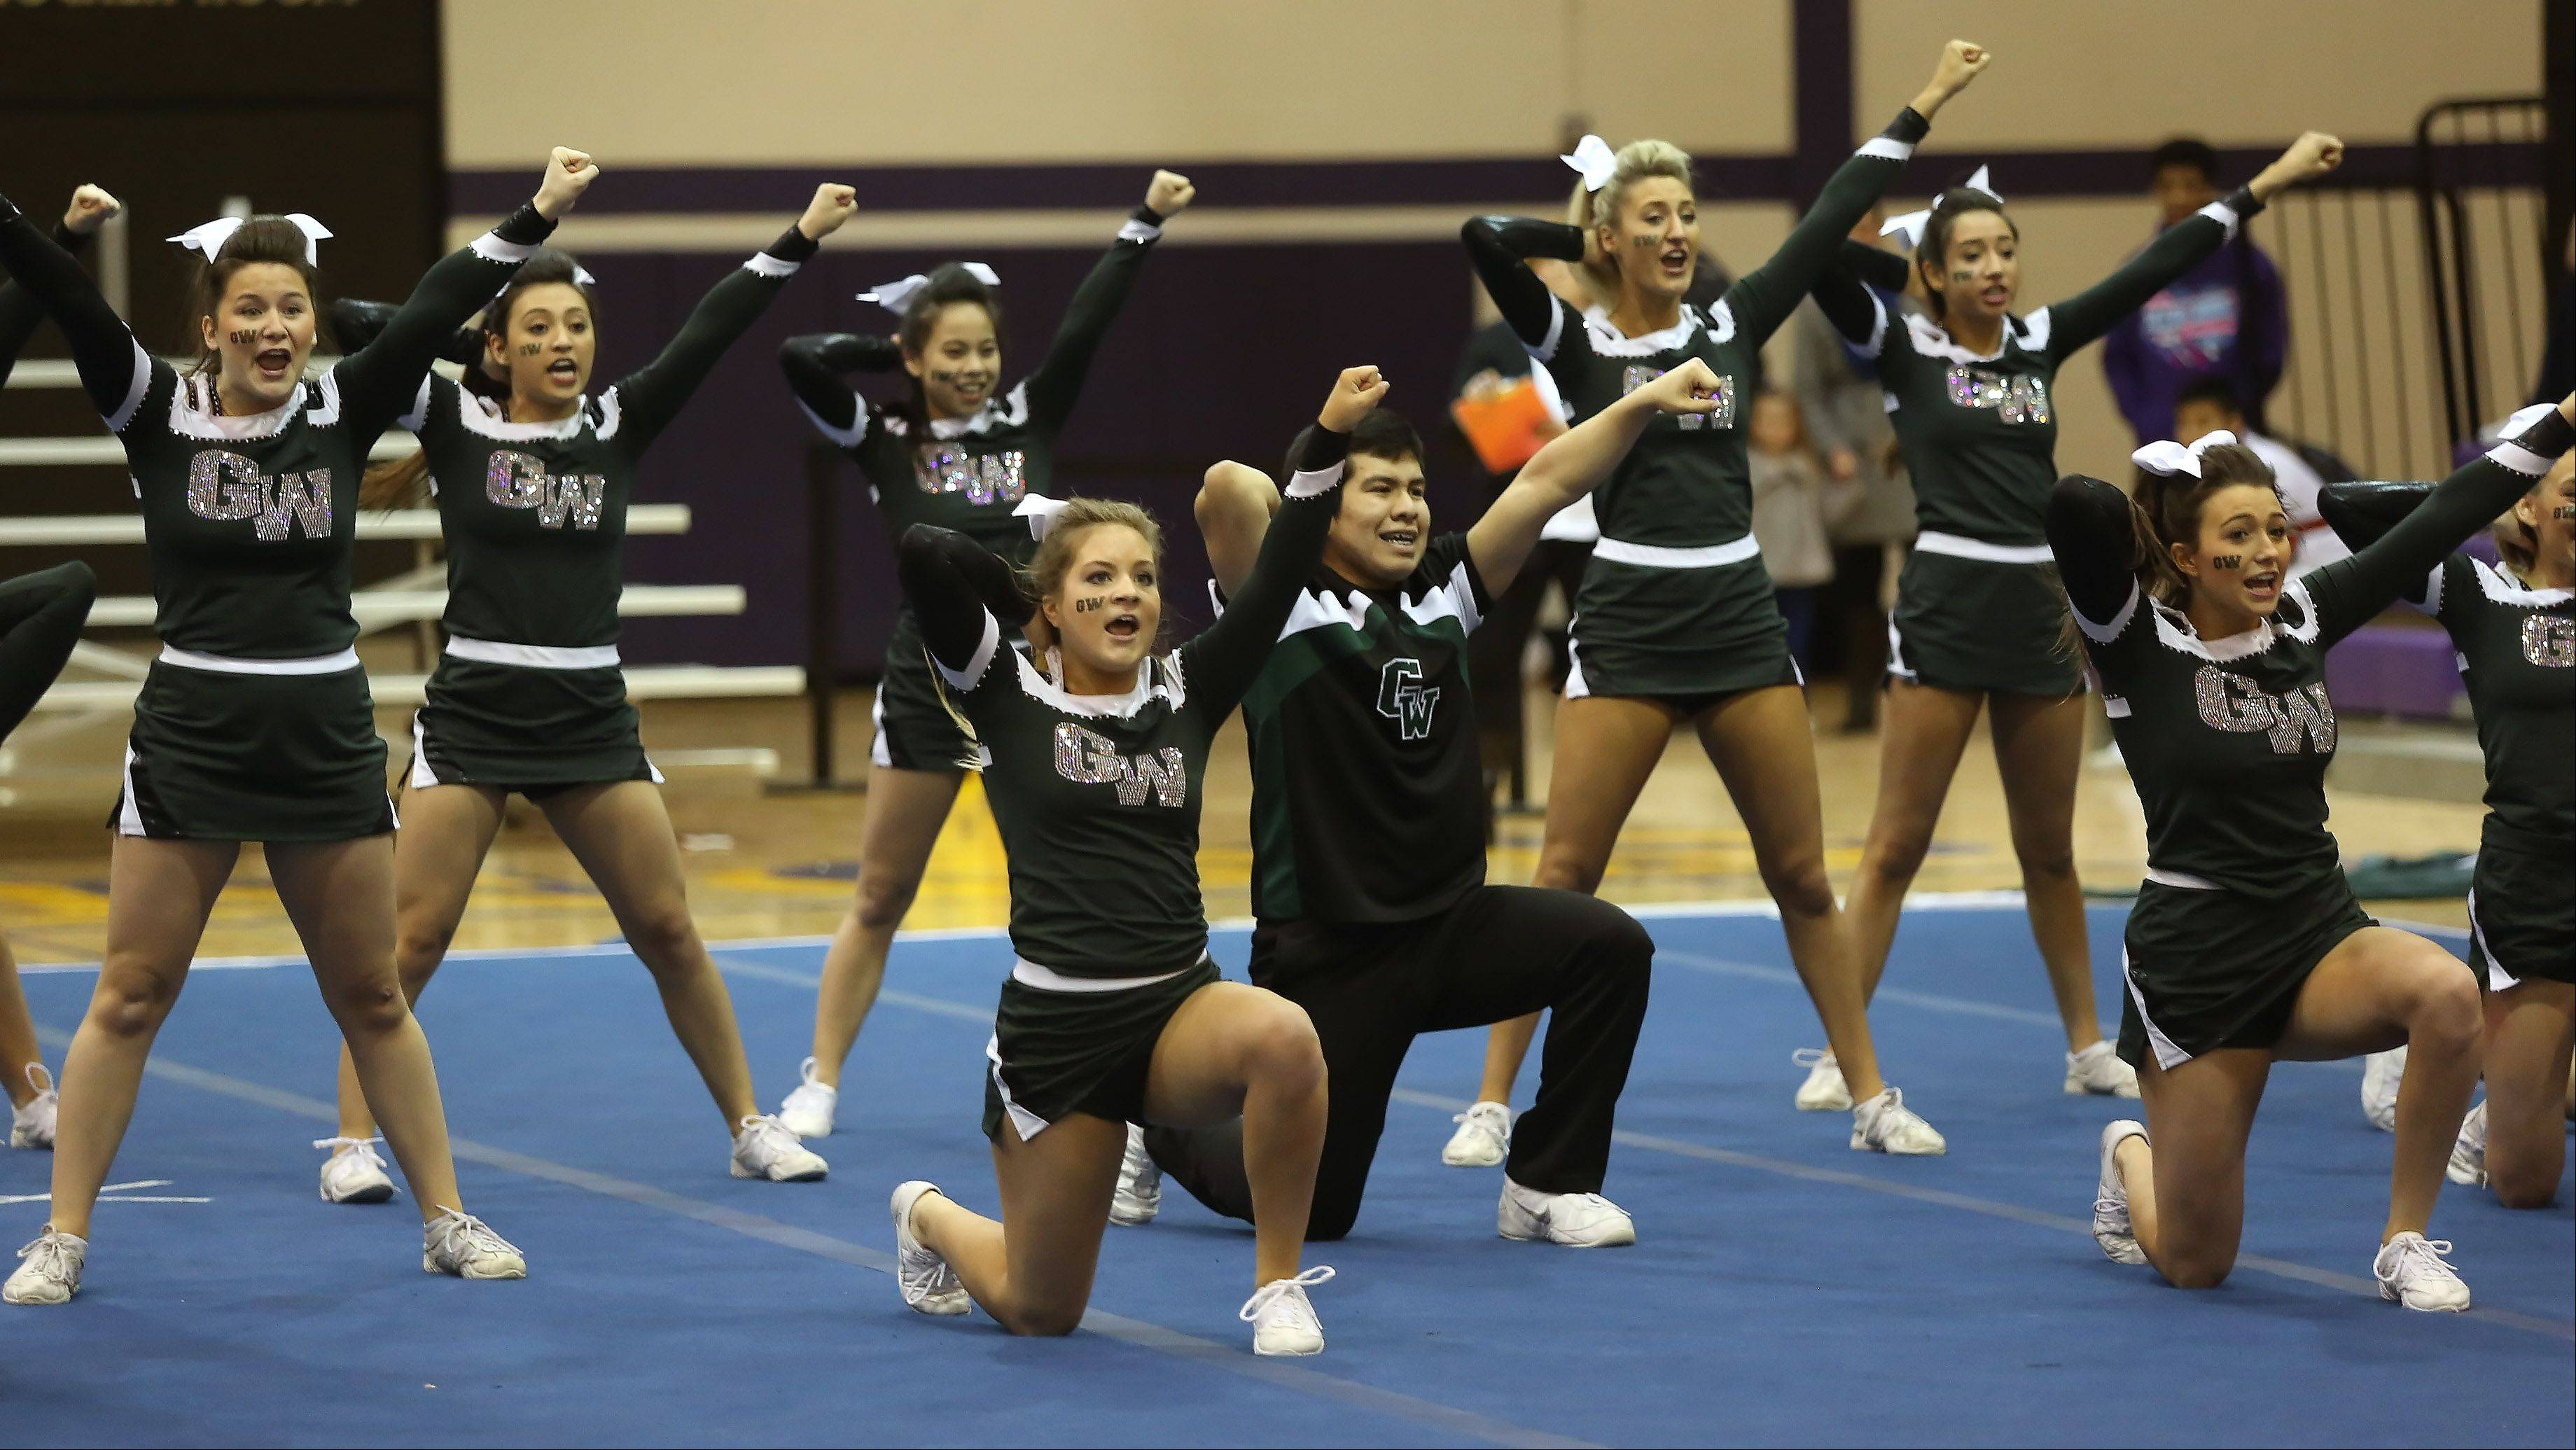 Glenbard West High School competes in the Coed Team category Sunday during the IHSA Cheerleading Sectional at Rolling Meadows High School.